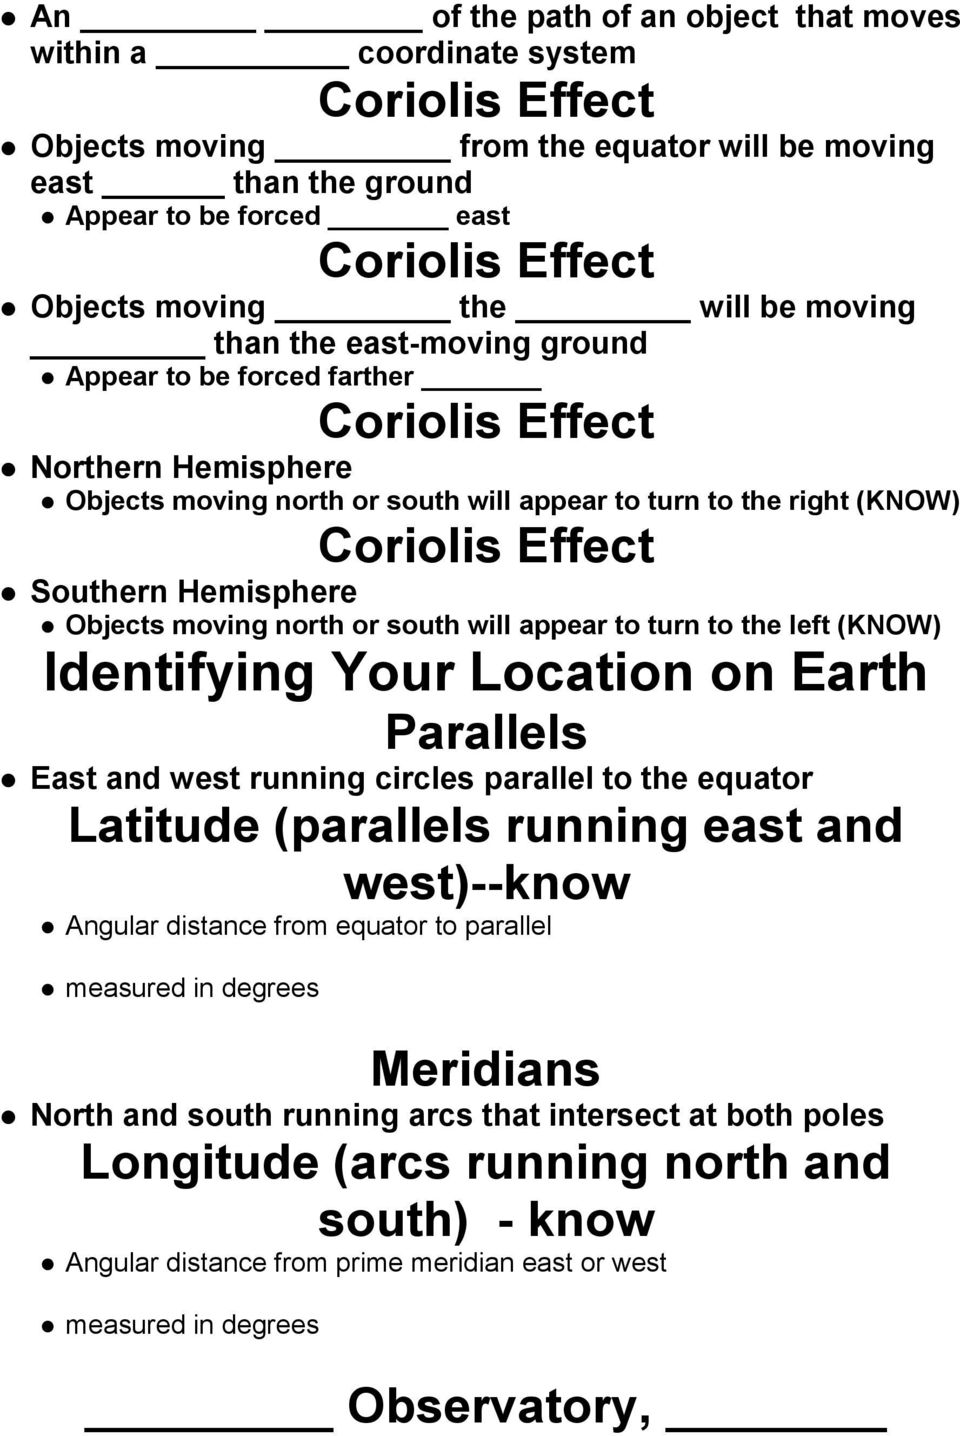 Effect Southern Hemisphere Objects moving north or south will appear to turn to the left (KNOW) Identifying Your Location on Earth Parallels East and west running circles parallel to the equator